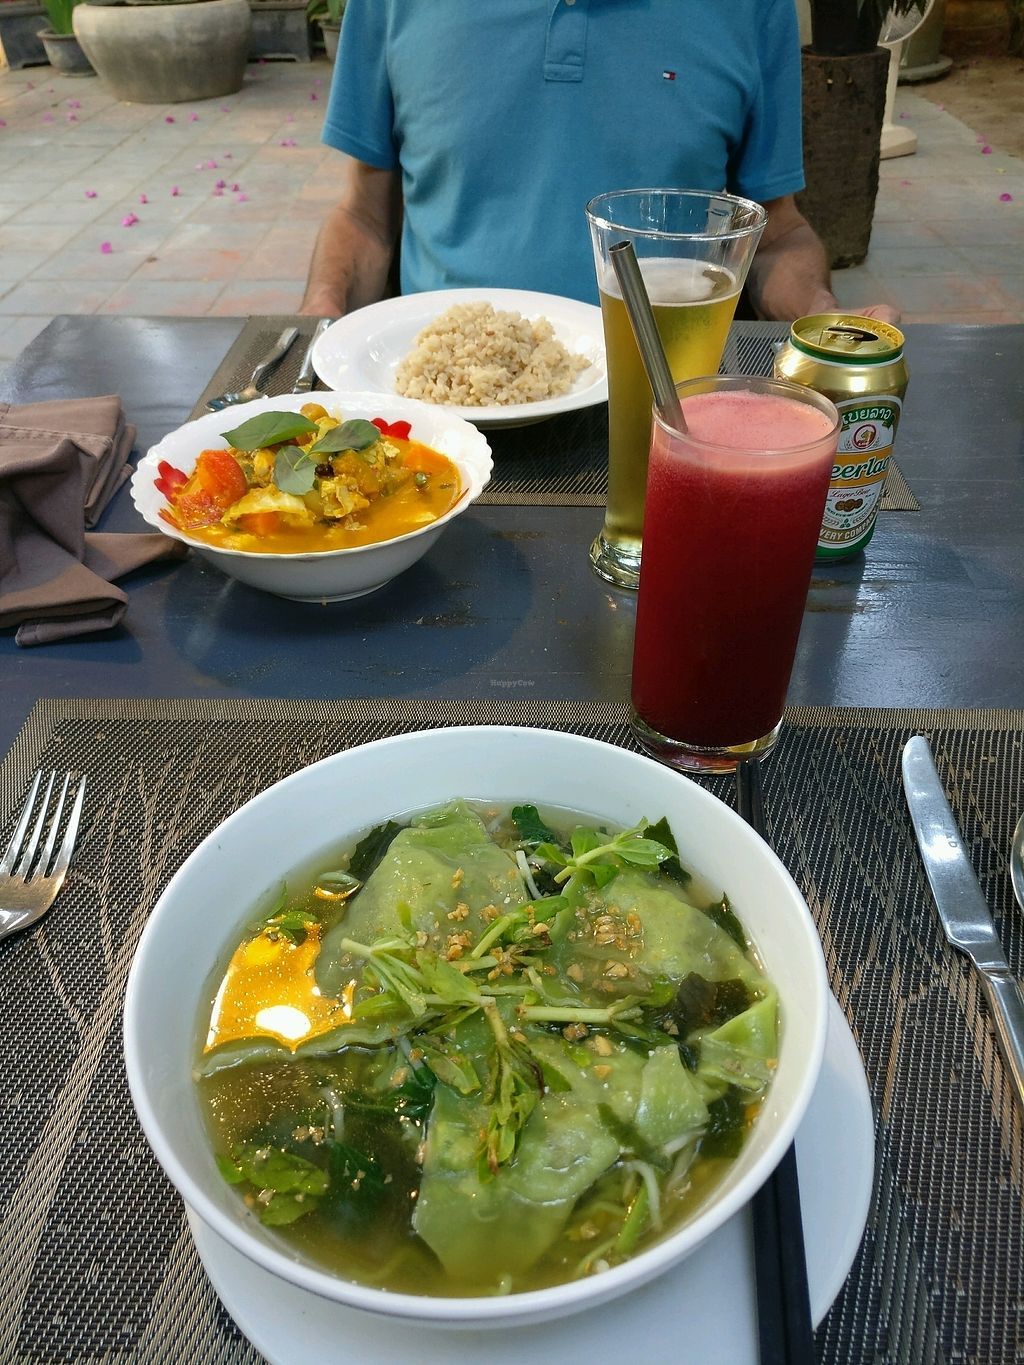 """Photo of CLOSED: Banlle Vegetarian Restaurant  by <a href=""""/members/profile/cdnvegan"""">cdnvegan</a> <br/>wonton soup <br/> February 15, 2018  - <a href='/contact/abuse/image/61795/359662'>Report</a>"""